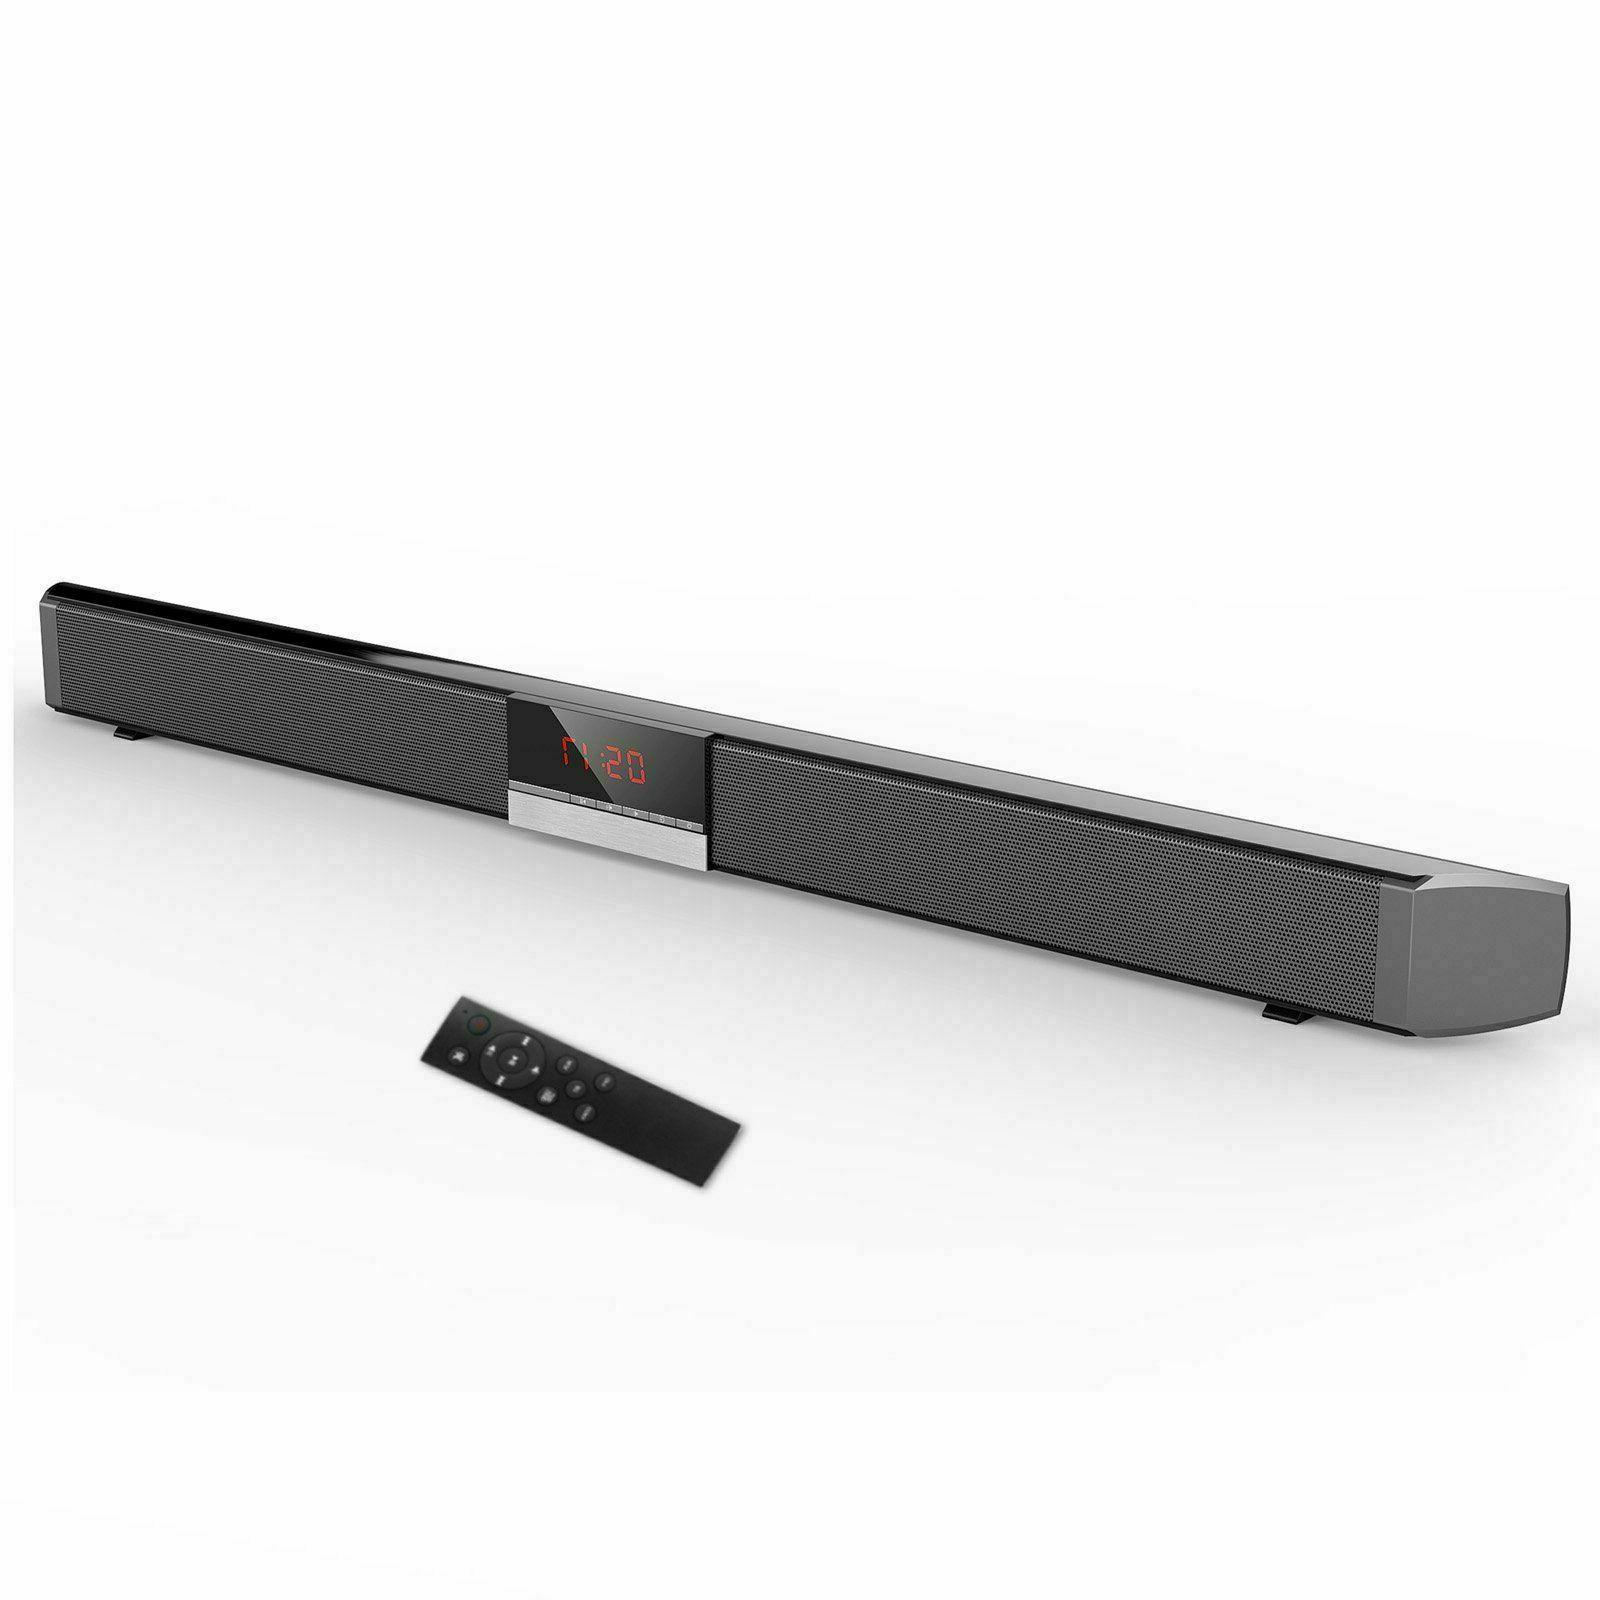 Powerful TV Home Subwoofer with